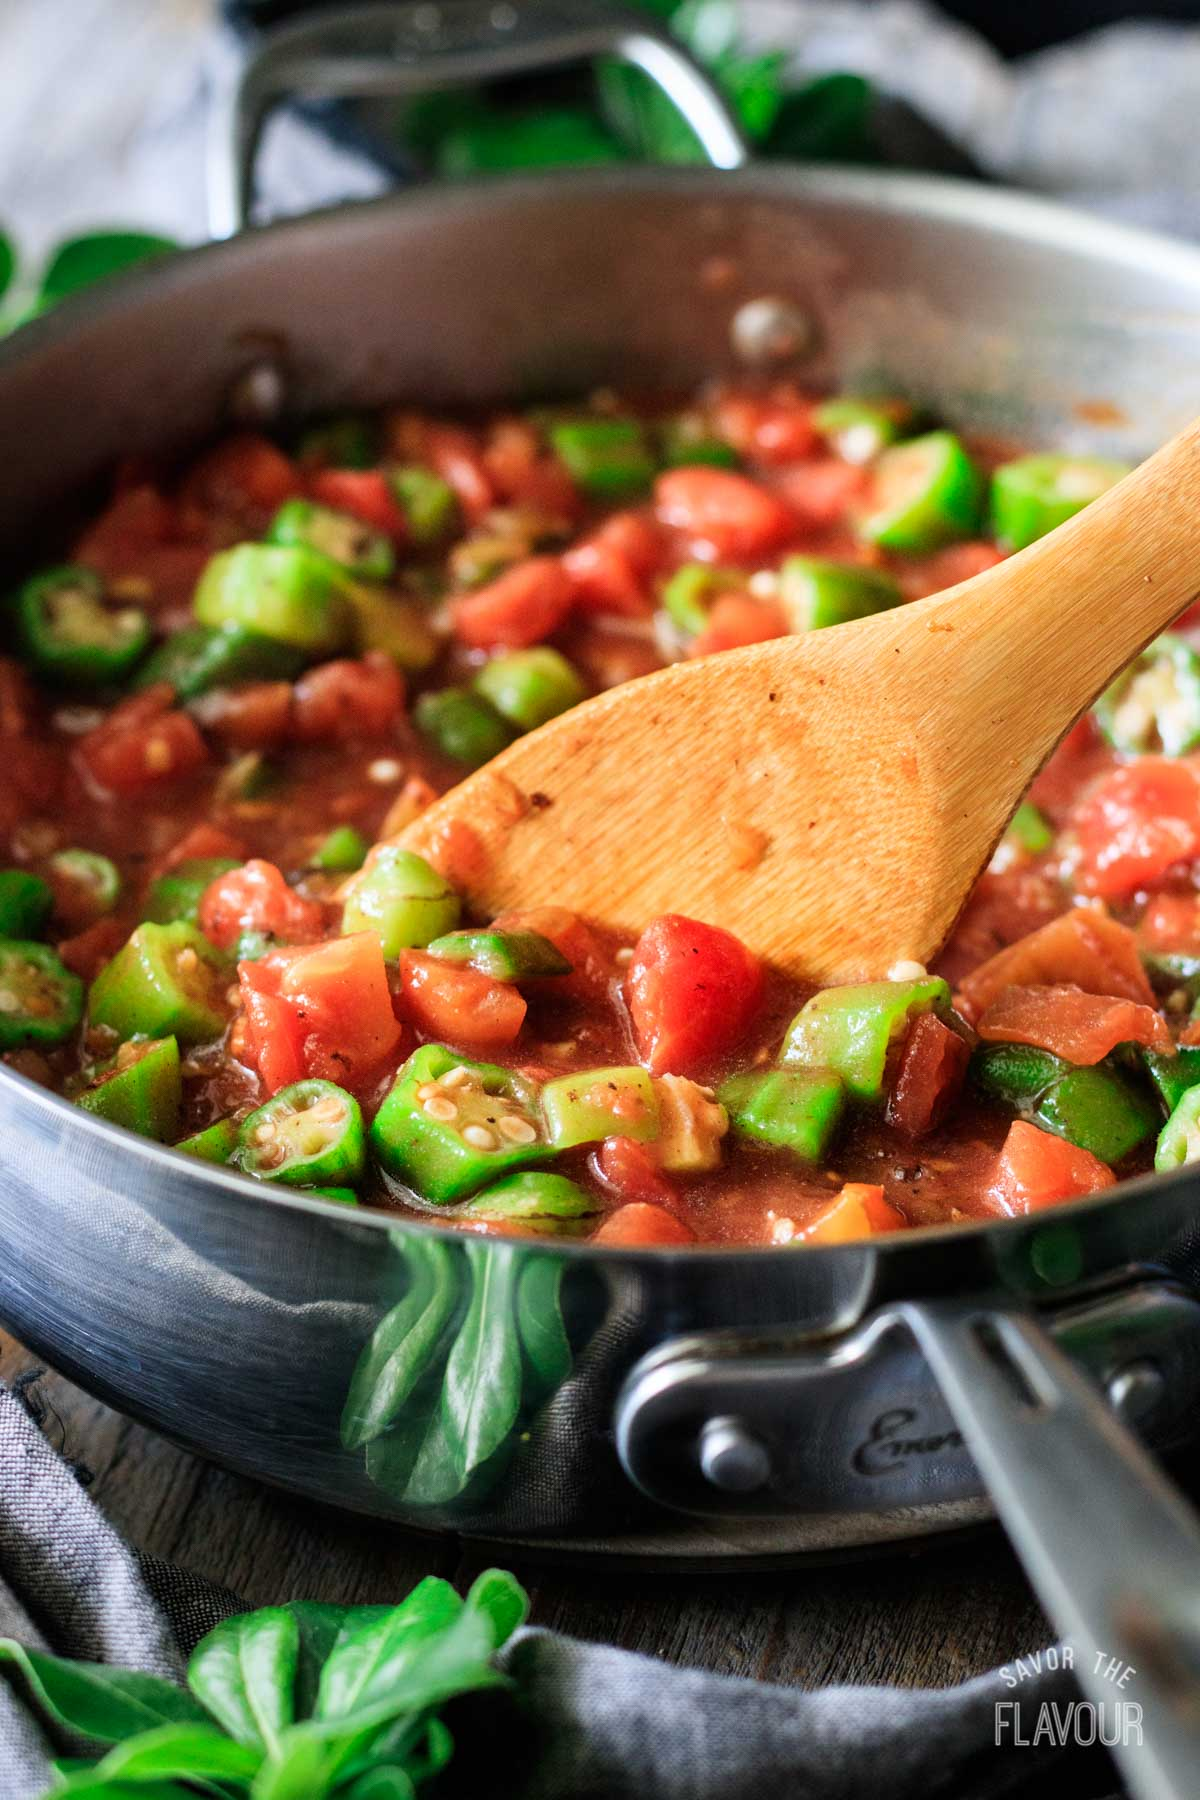 stirring the okra and tomatoes